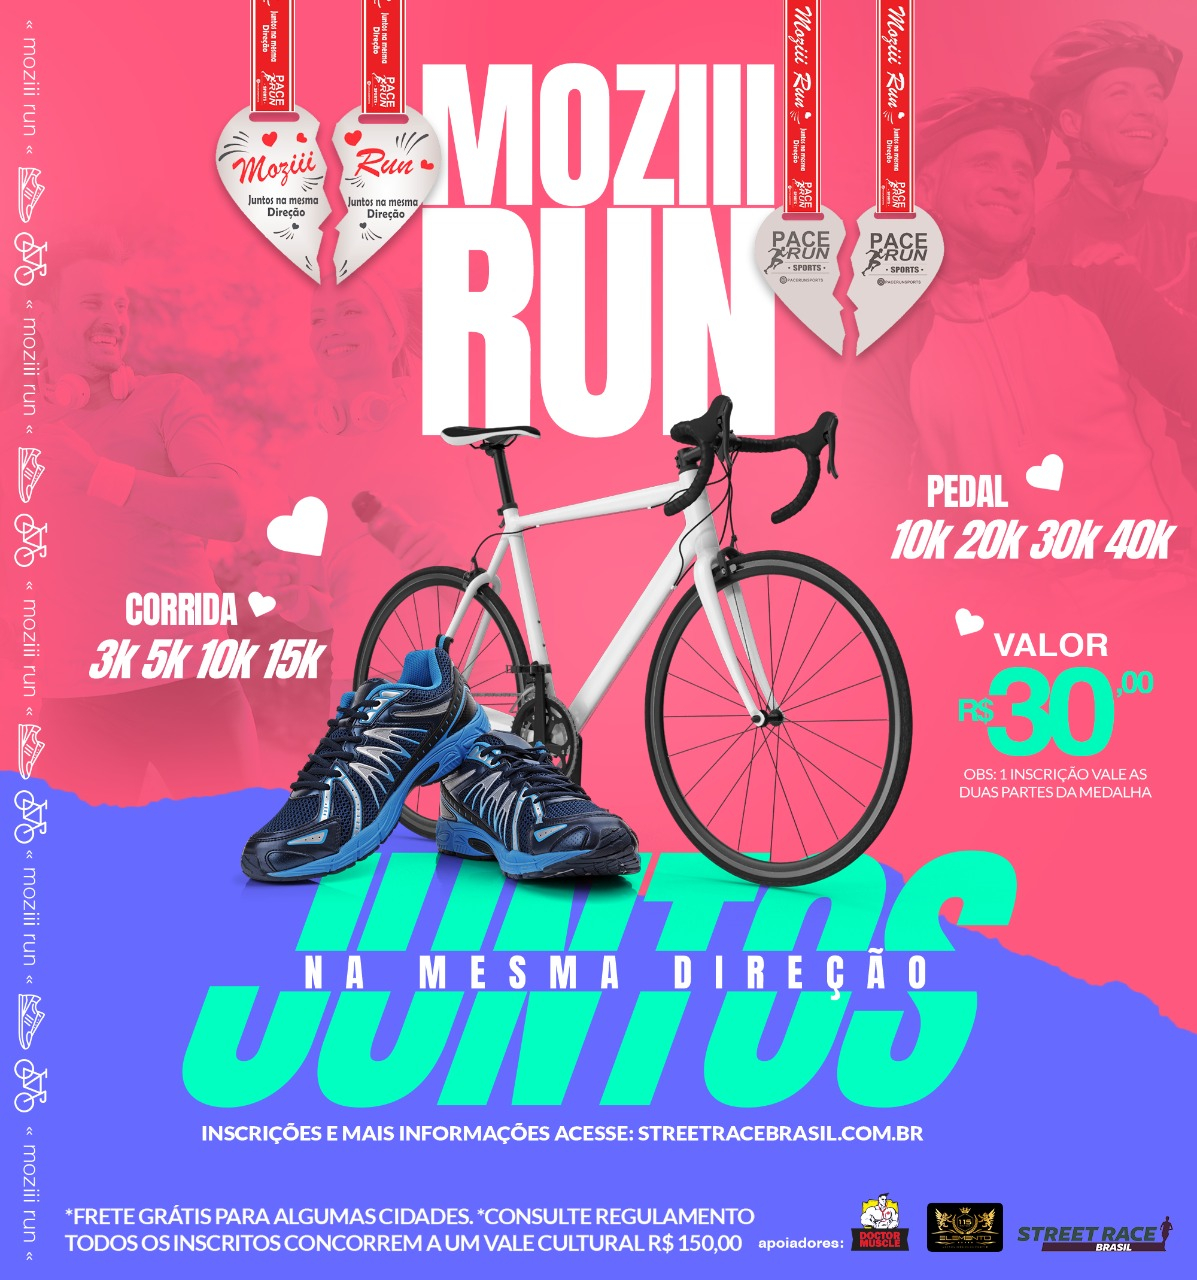 CORRIDA VIRTUAL – MOZIII RUN